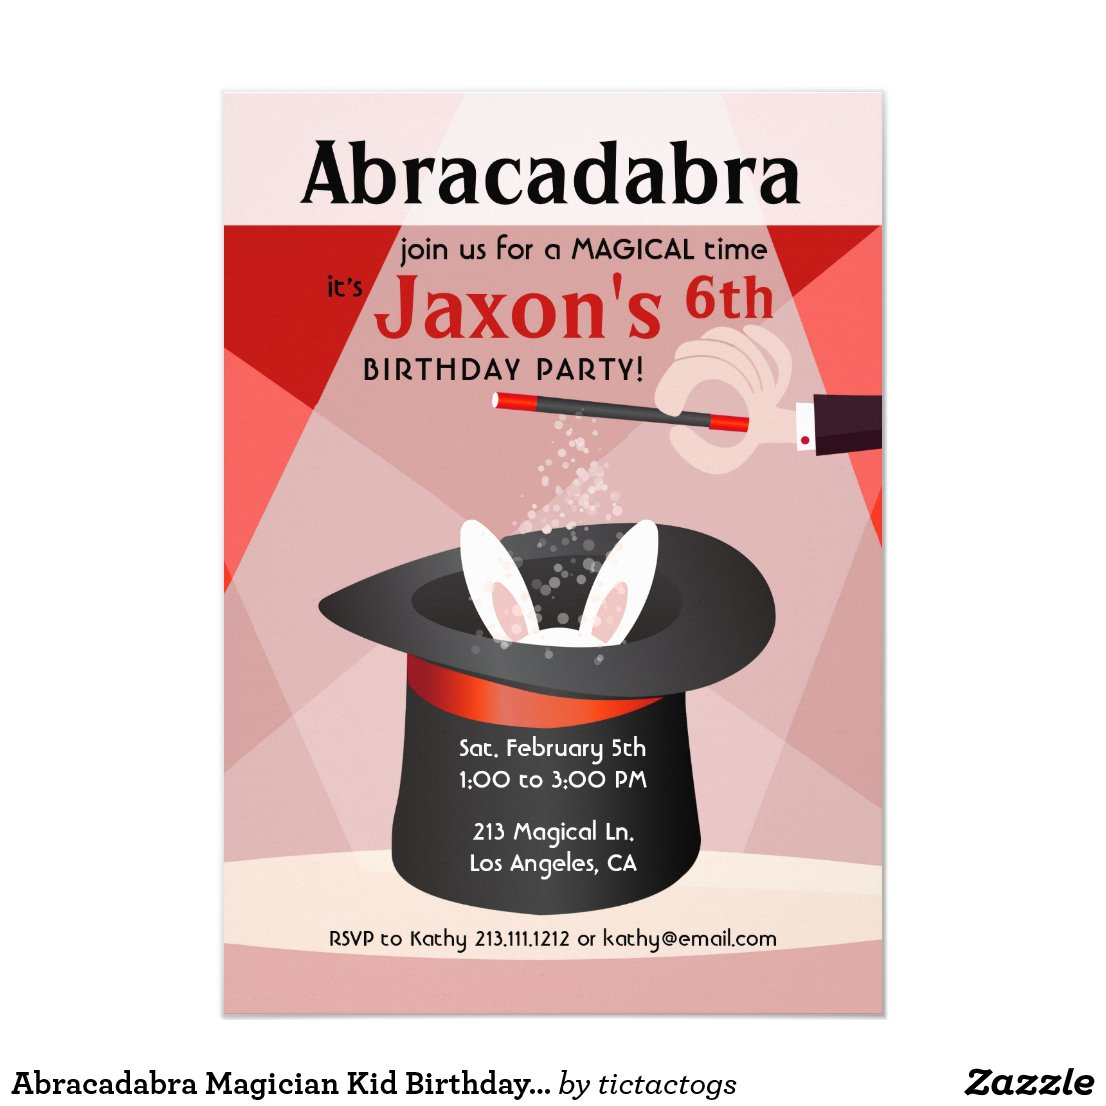 Abracadabra Magician Kid Birthday Party Invitation